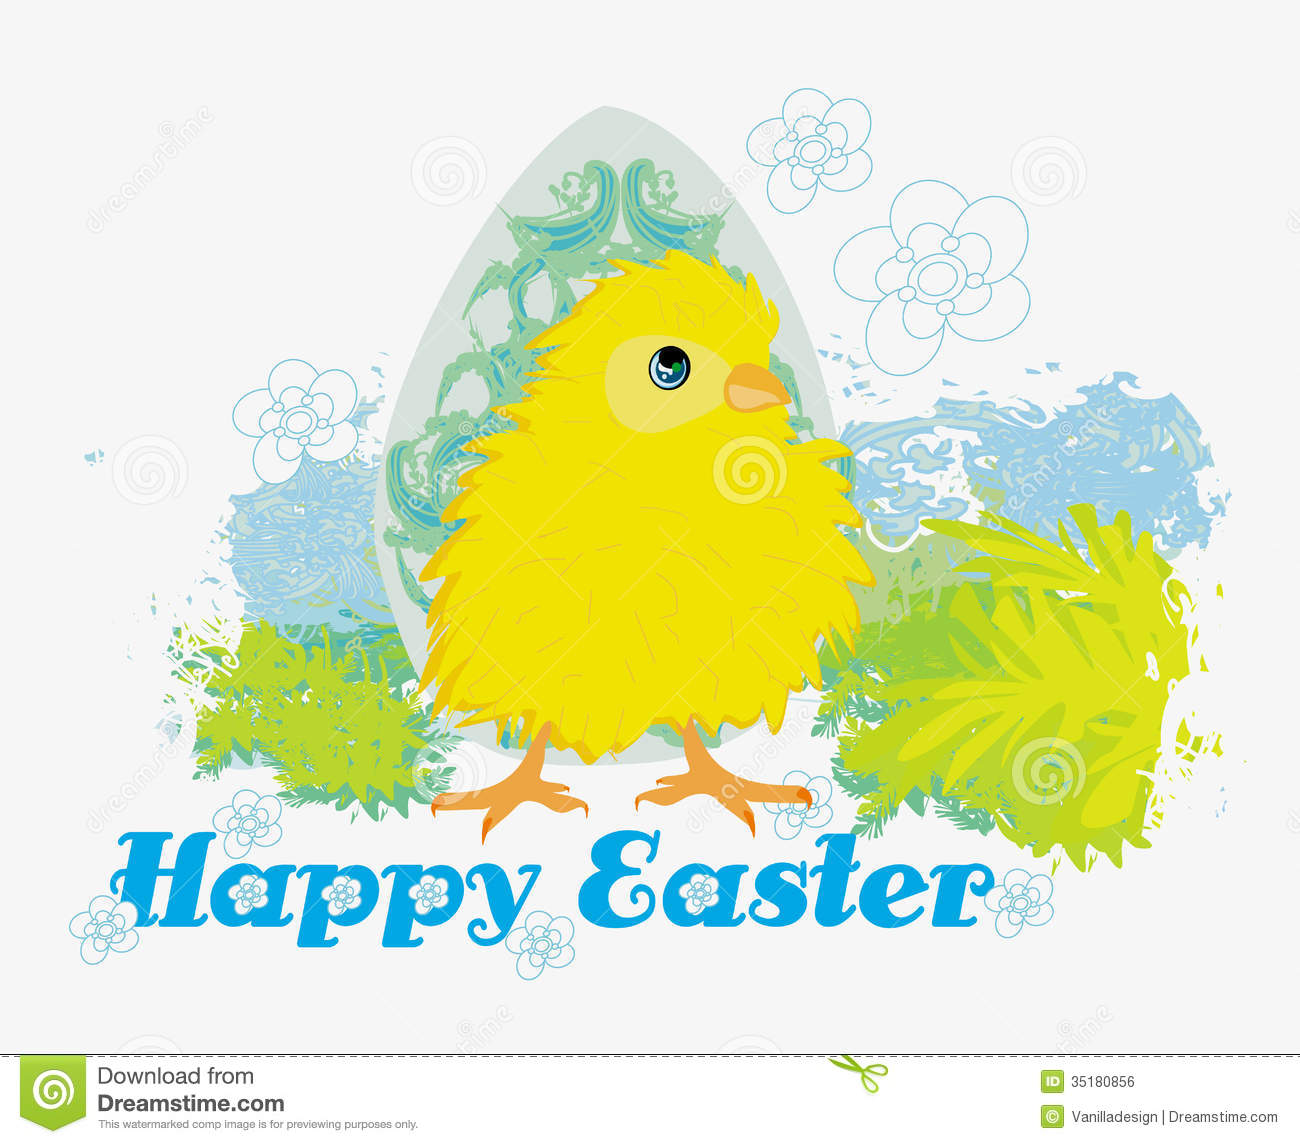 Cute Easter Chick Cartoon CharacterHappy Card